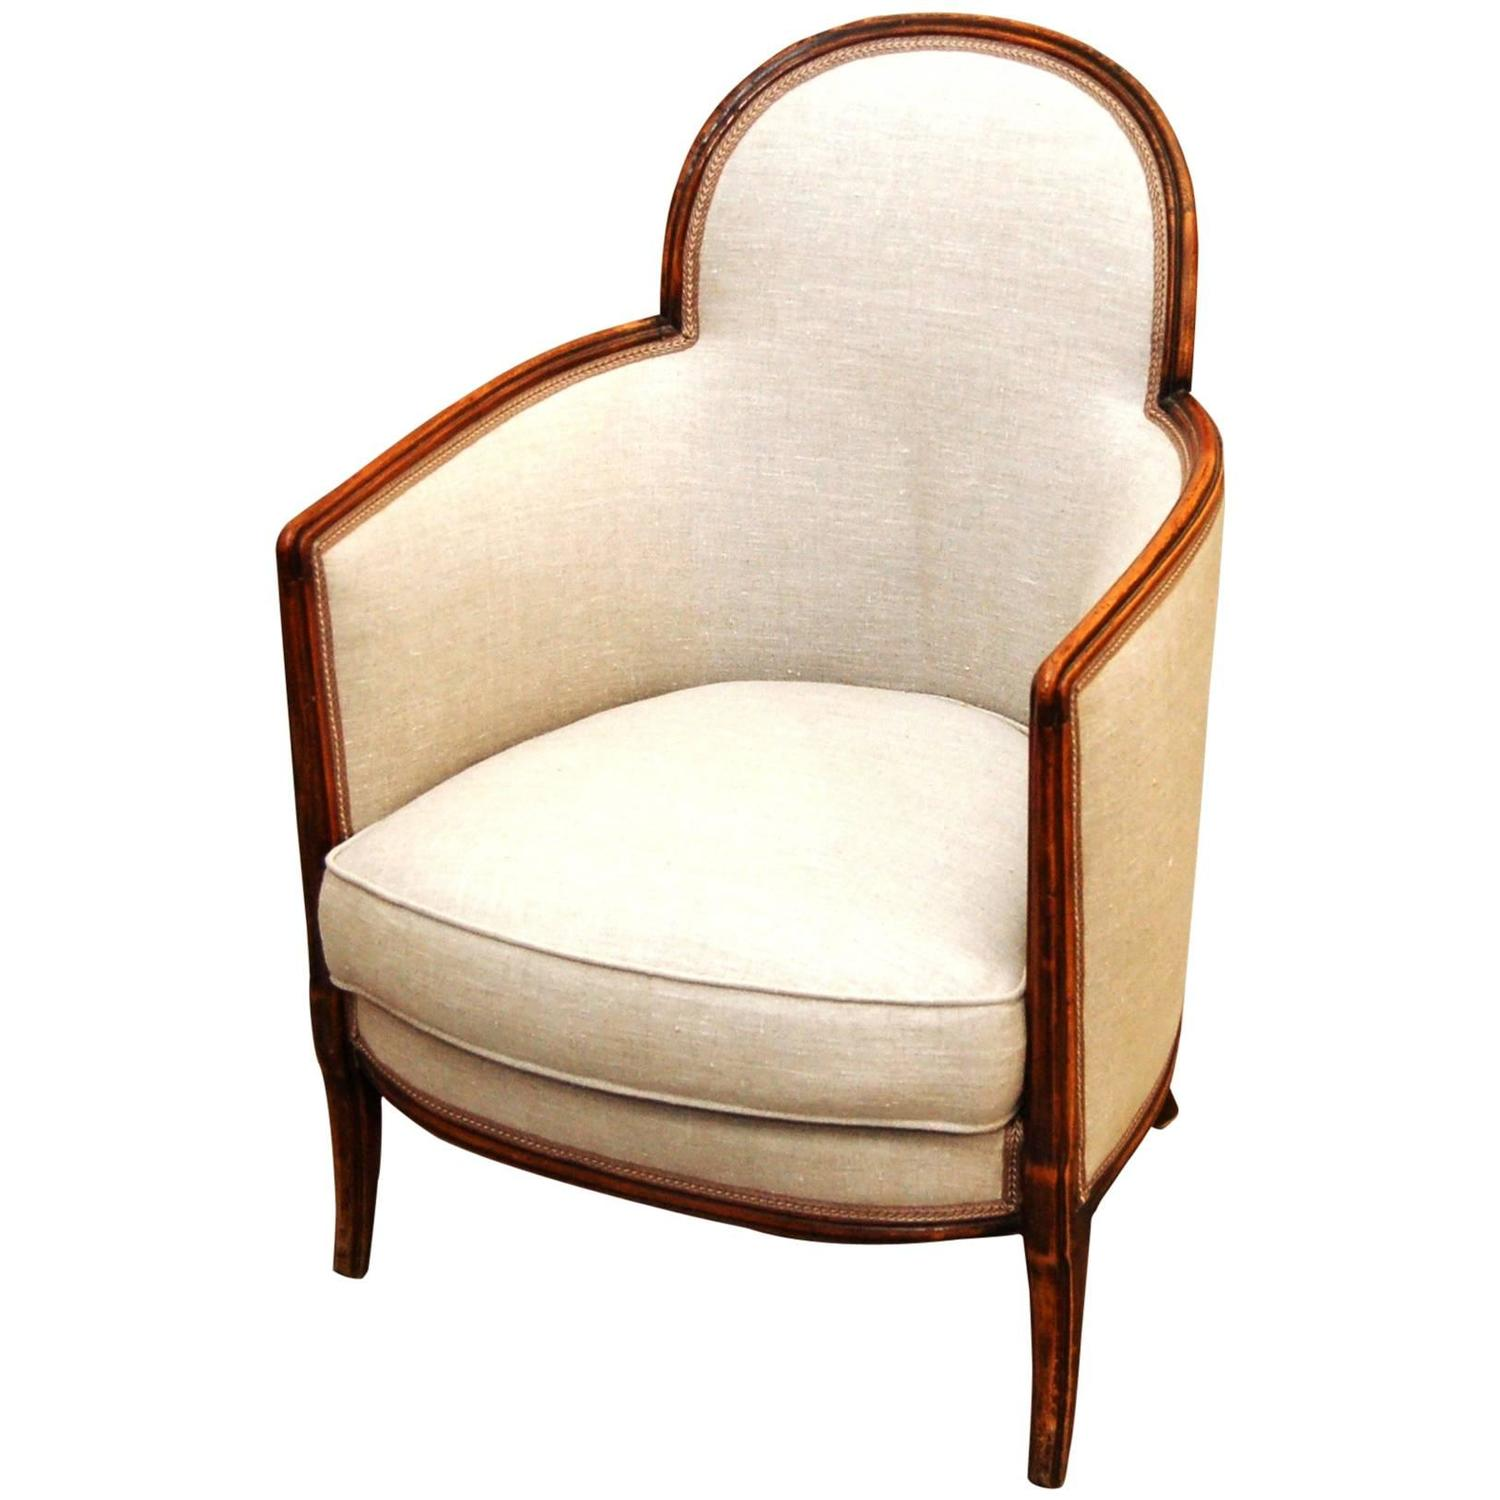 Danish Furniture St Louis 19th Century Danish Louis Xvi Style Bergere At 1stdibs